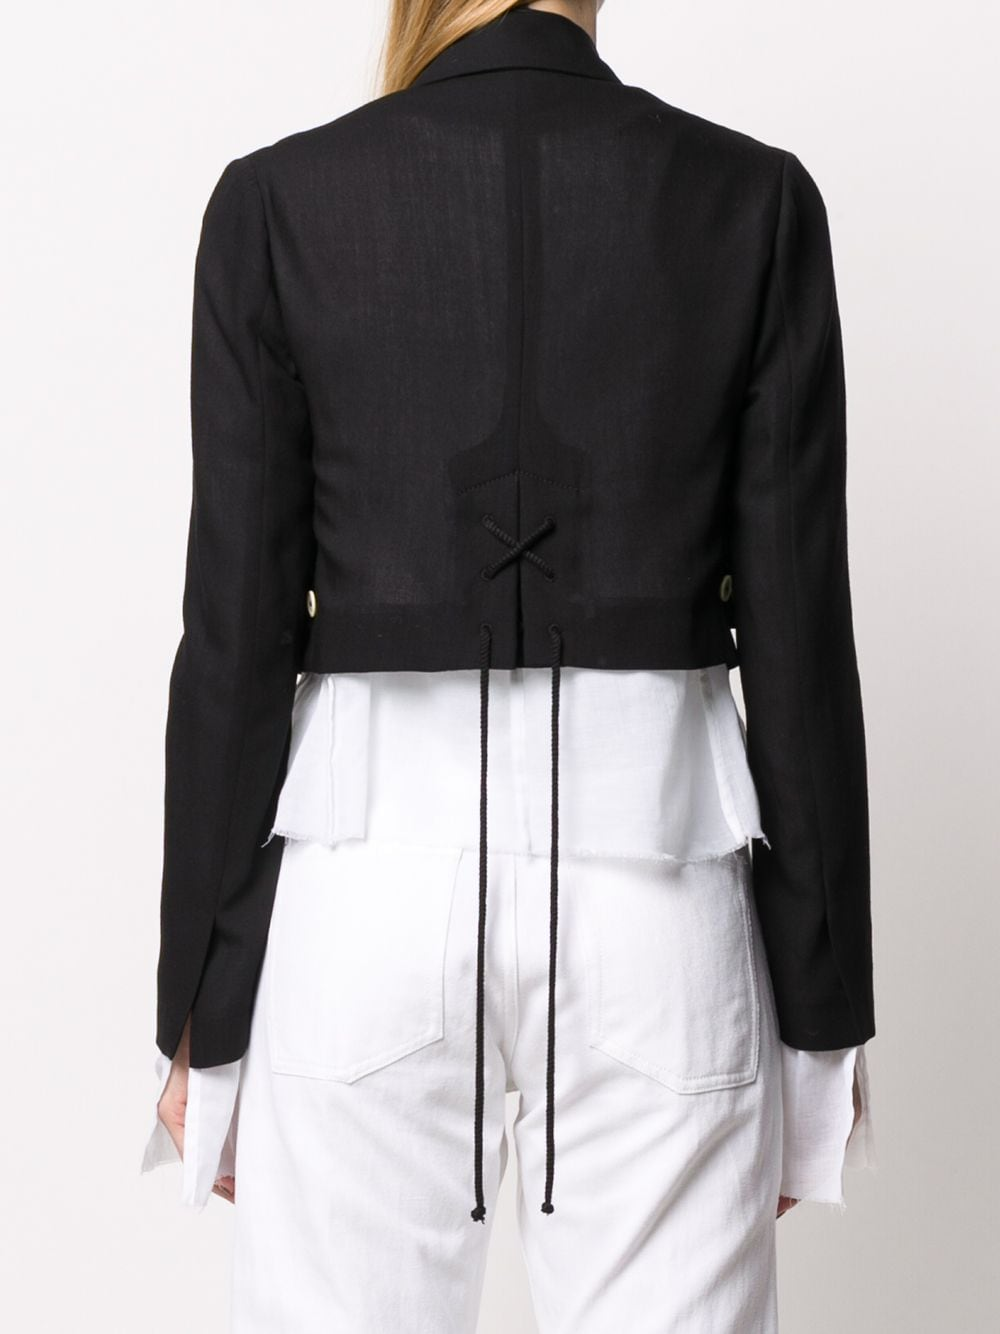 Giacca doppiopetto ANN DEMEULEMEESTER | Giacca | 2001-1000-P-170099